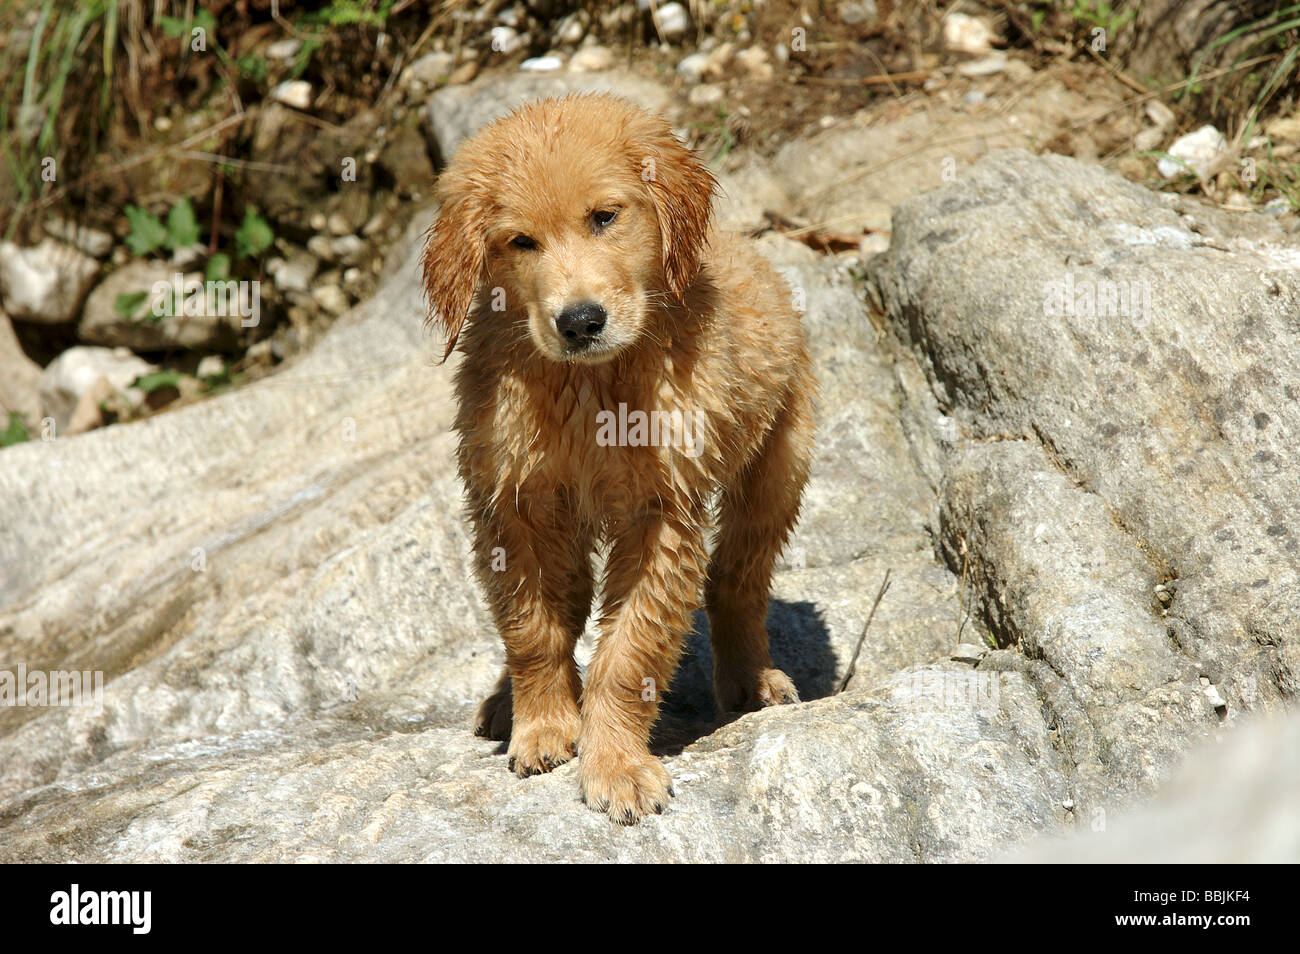 Image result for wet puppy